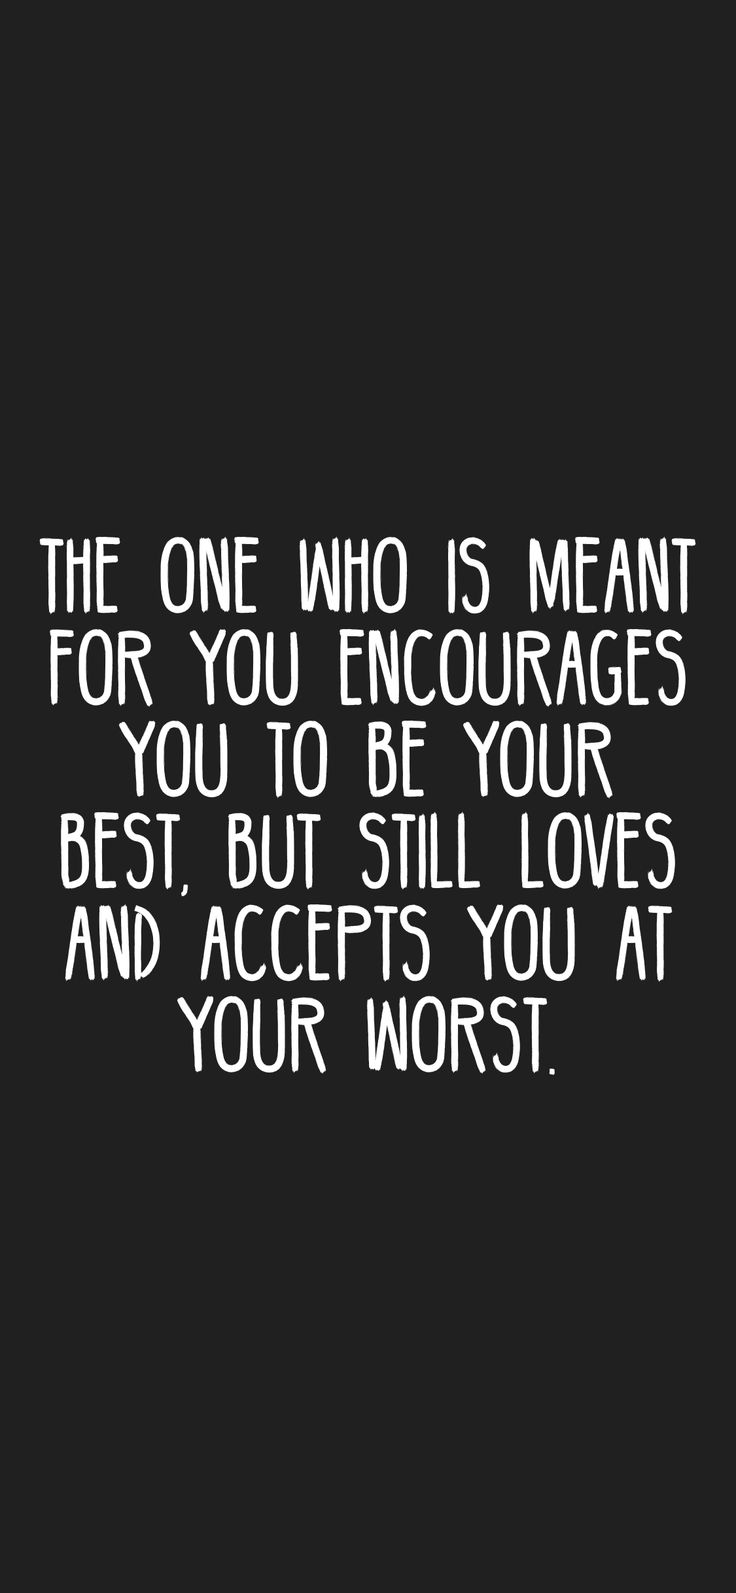 The one who is meant for you encourages you to be your best, but still loves and accepts you at your worst.